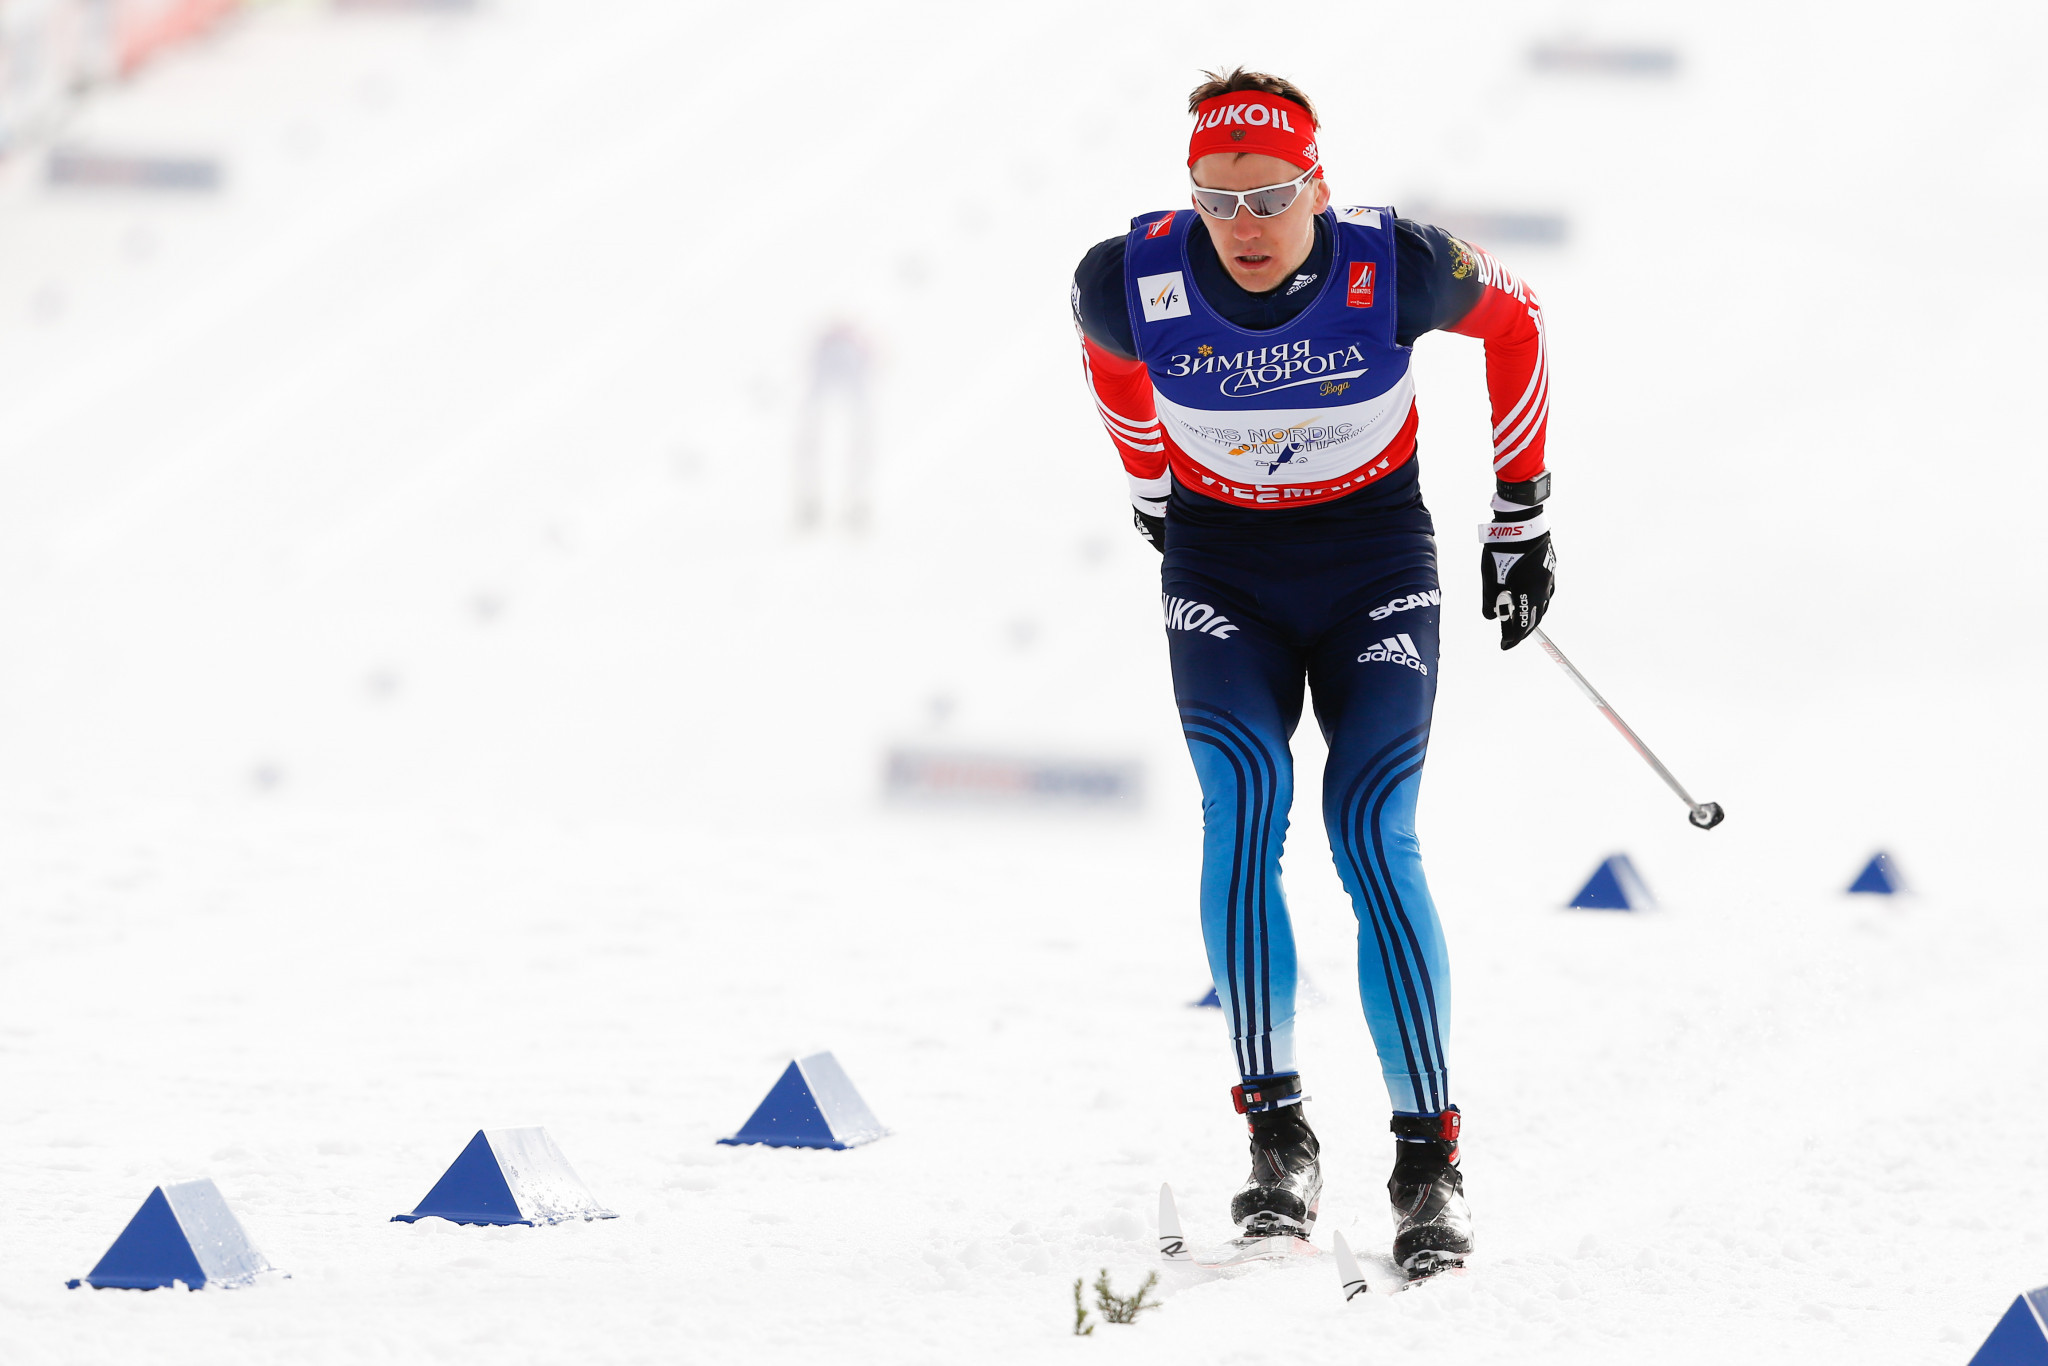 Russian cross-country skiers latest to appeal doping suspensions to CAS